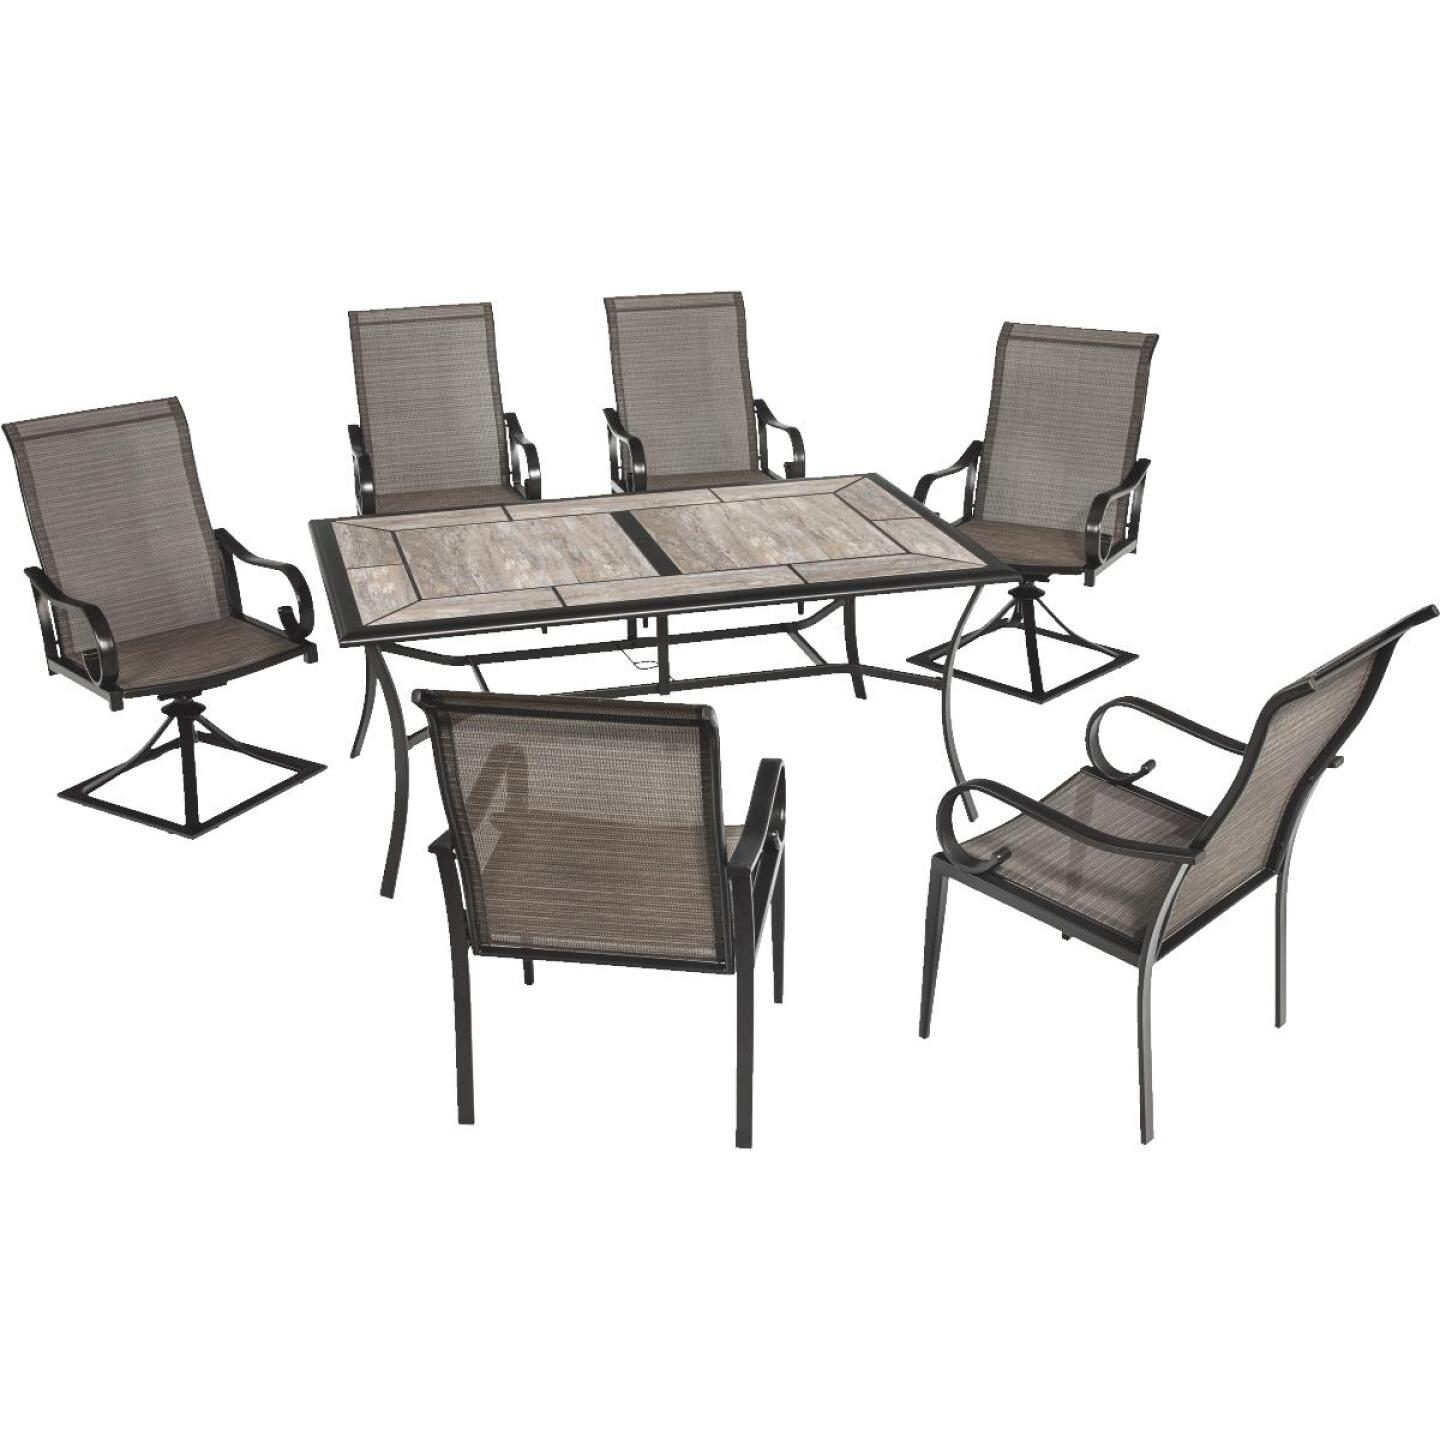 Outdoor Expressions Berkshire 7-Piece Dining Set Image 238